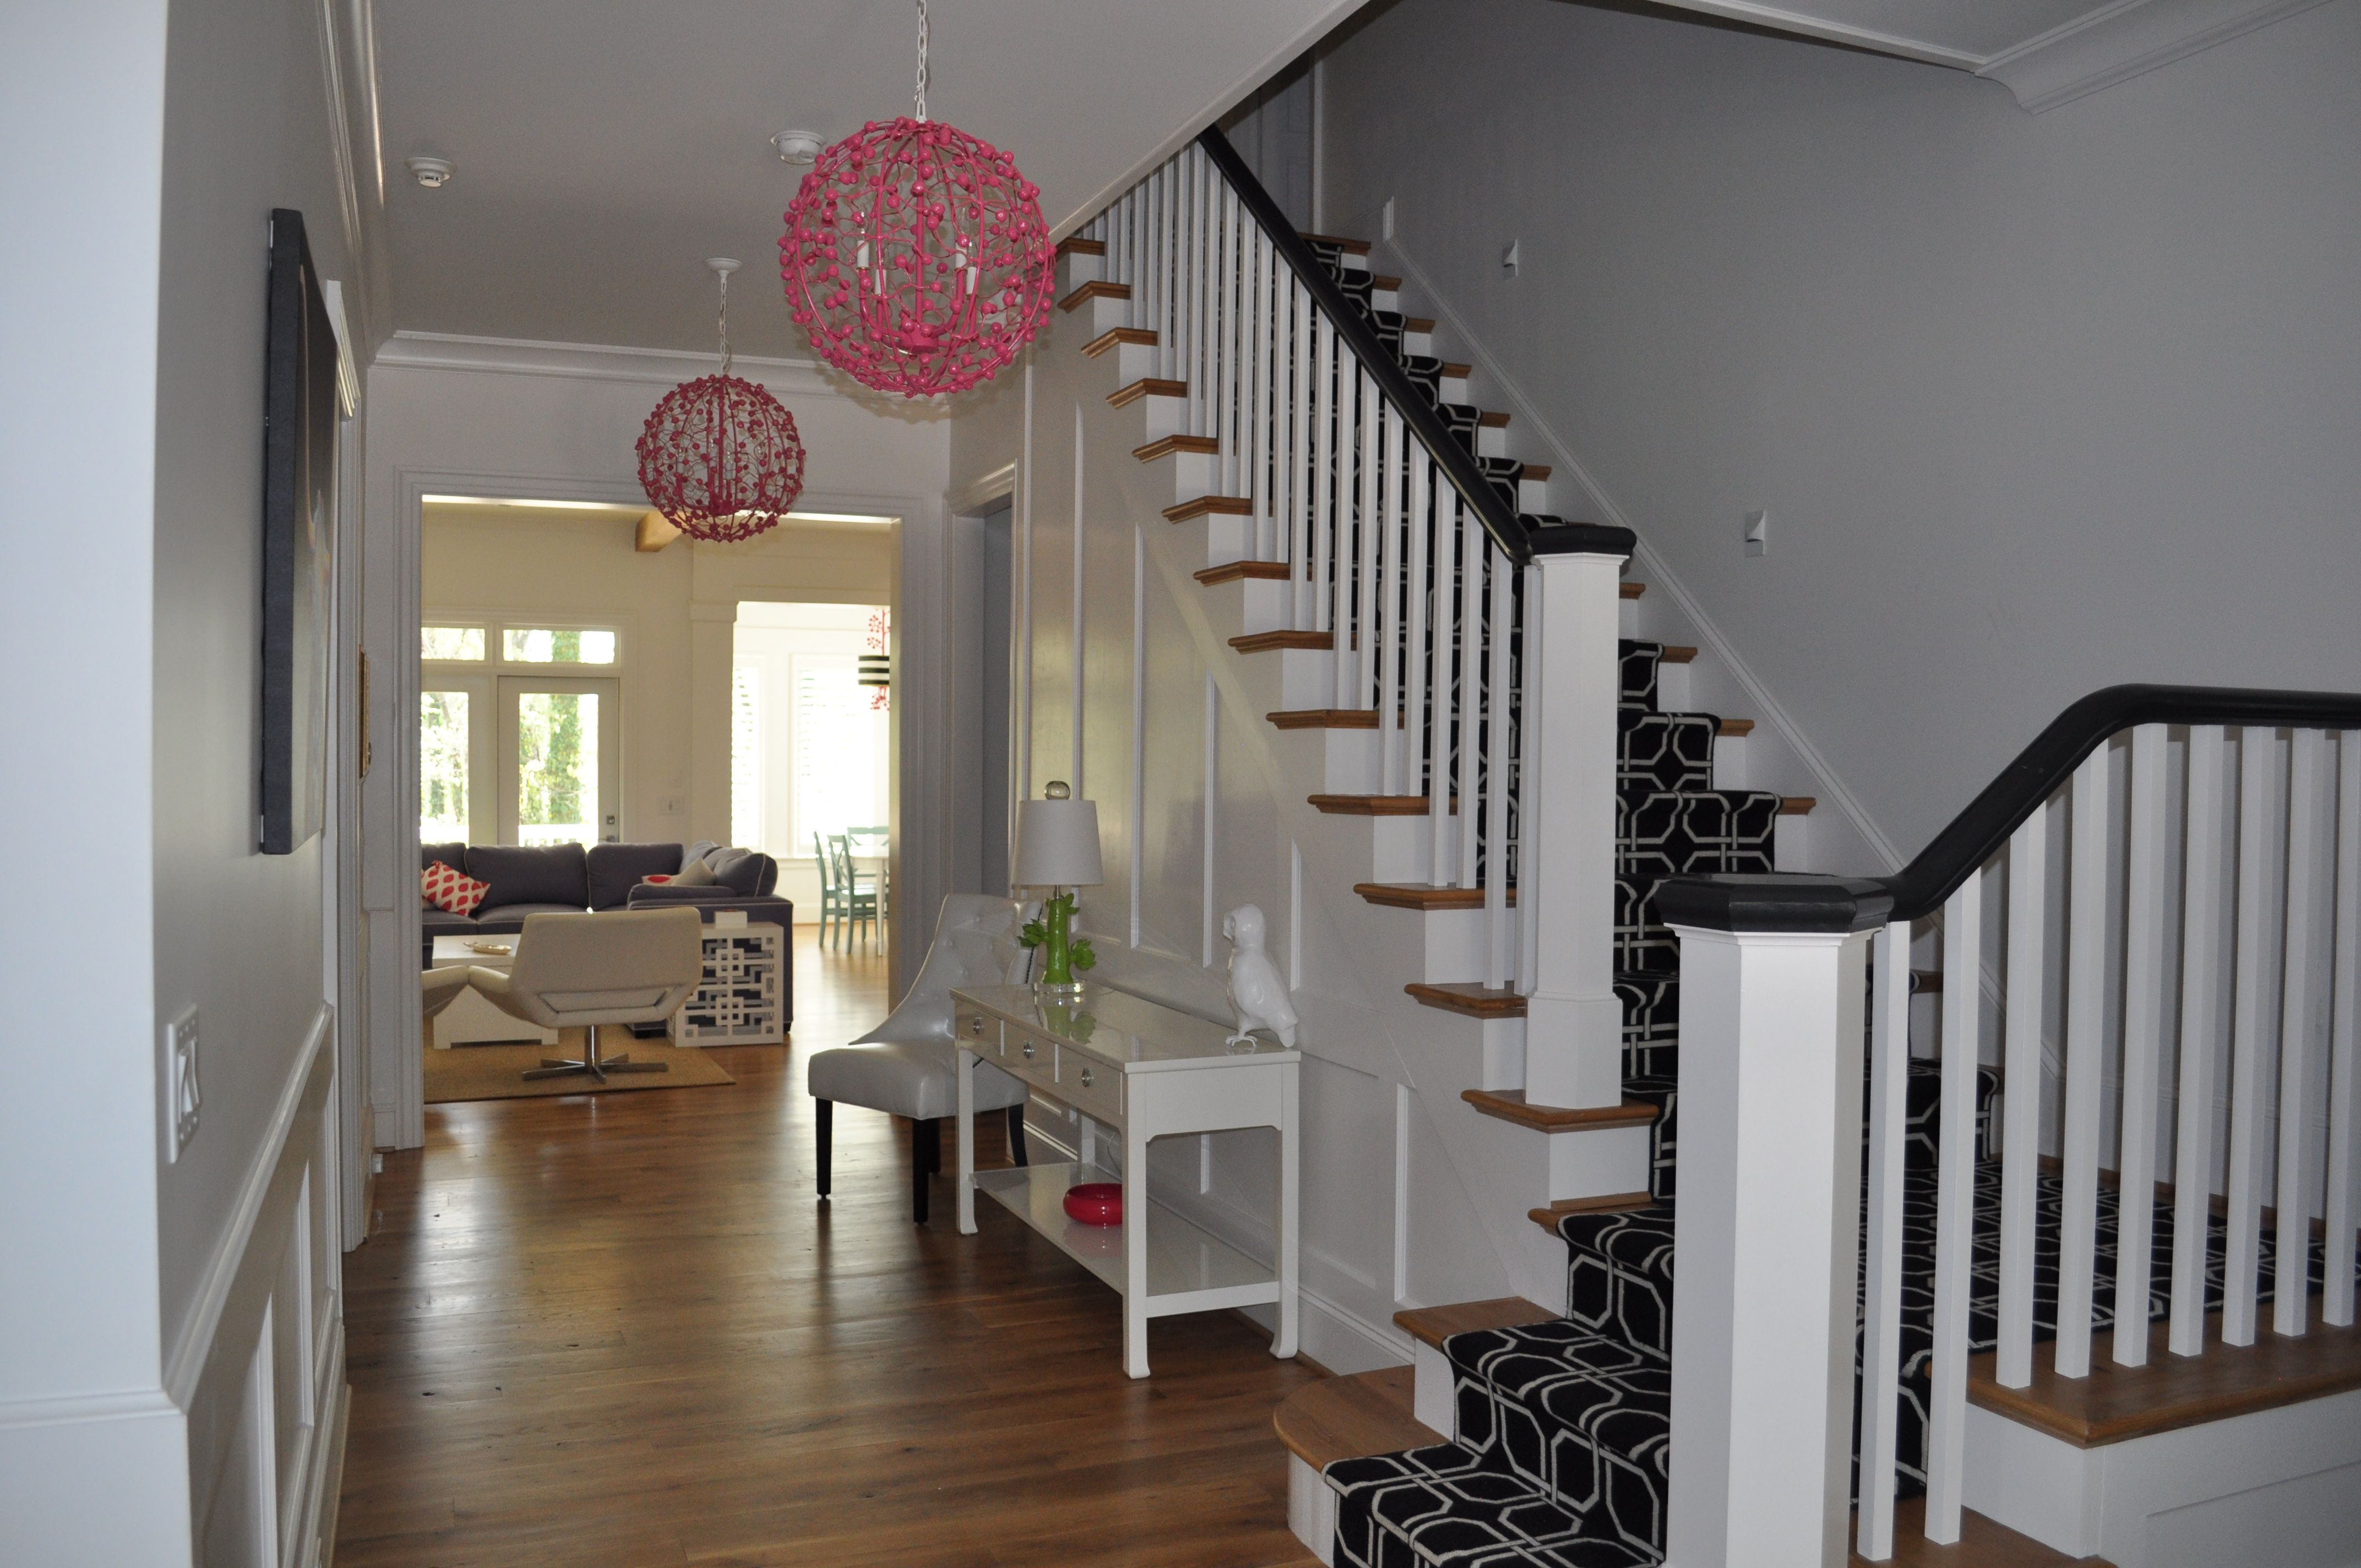 styles steel entrance stairs inspiration area double glossy entryway floor with stained your made handrail ceramic chandelier entrancedelier art black chandeliers good foyer foyerdeliercontemporarydelierentrance crystal exquisite inspired full grand deco custom looking white of home